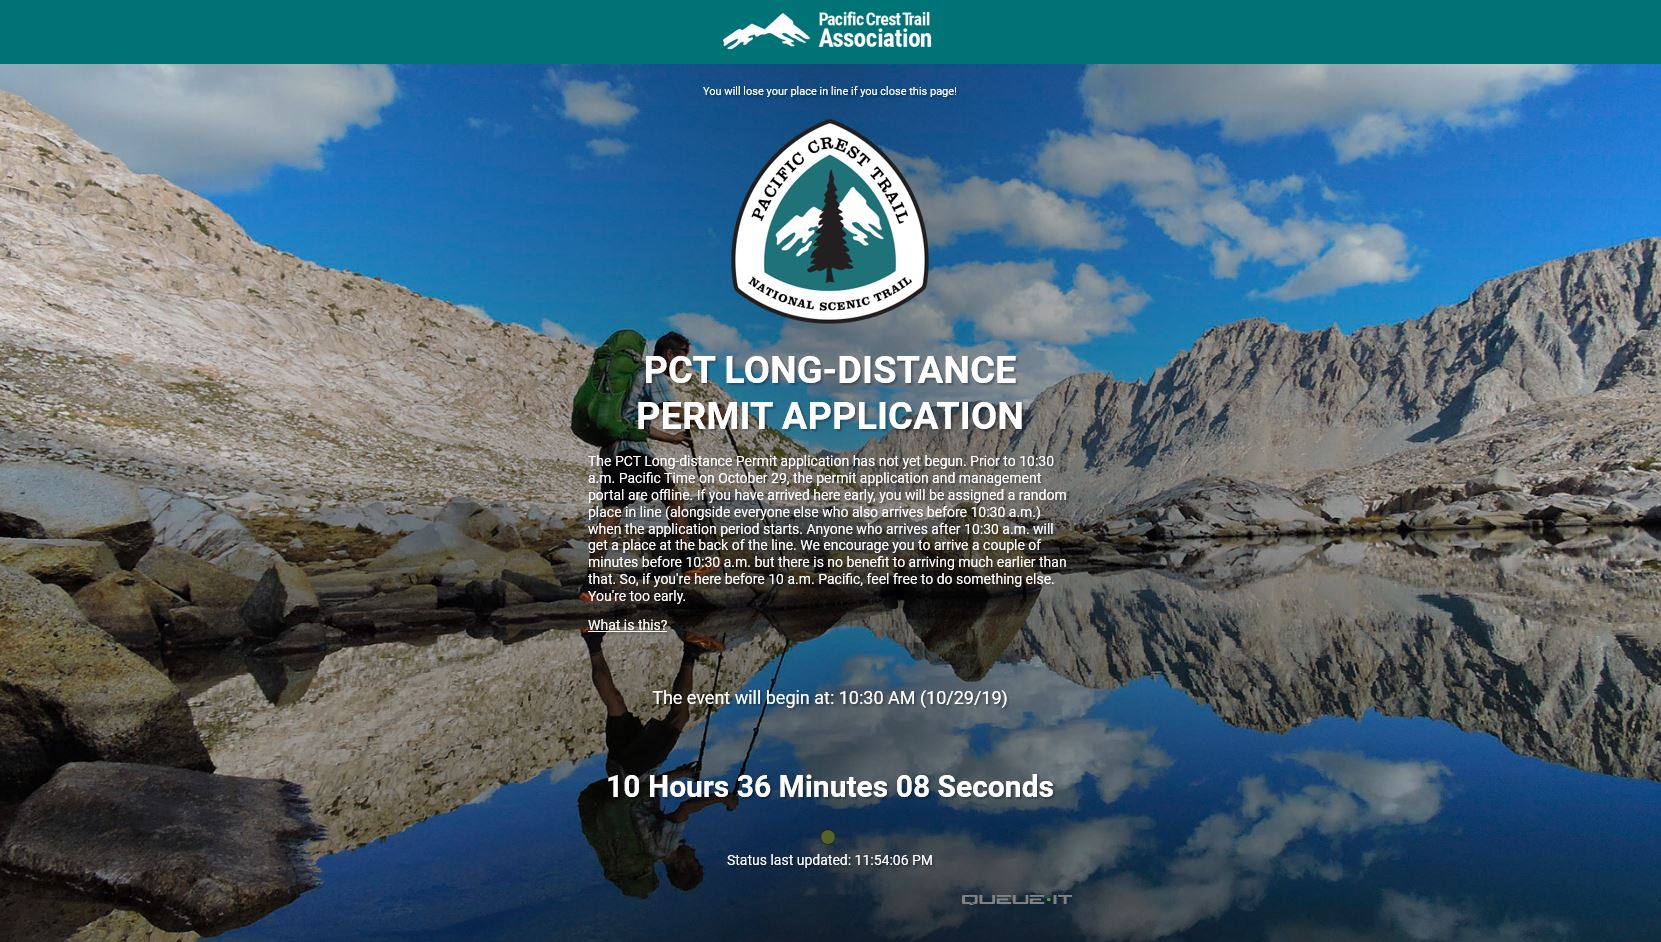 PCT Permit Application